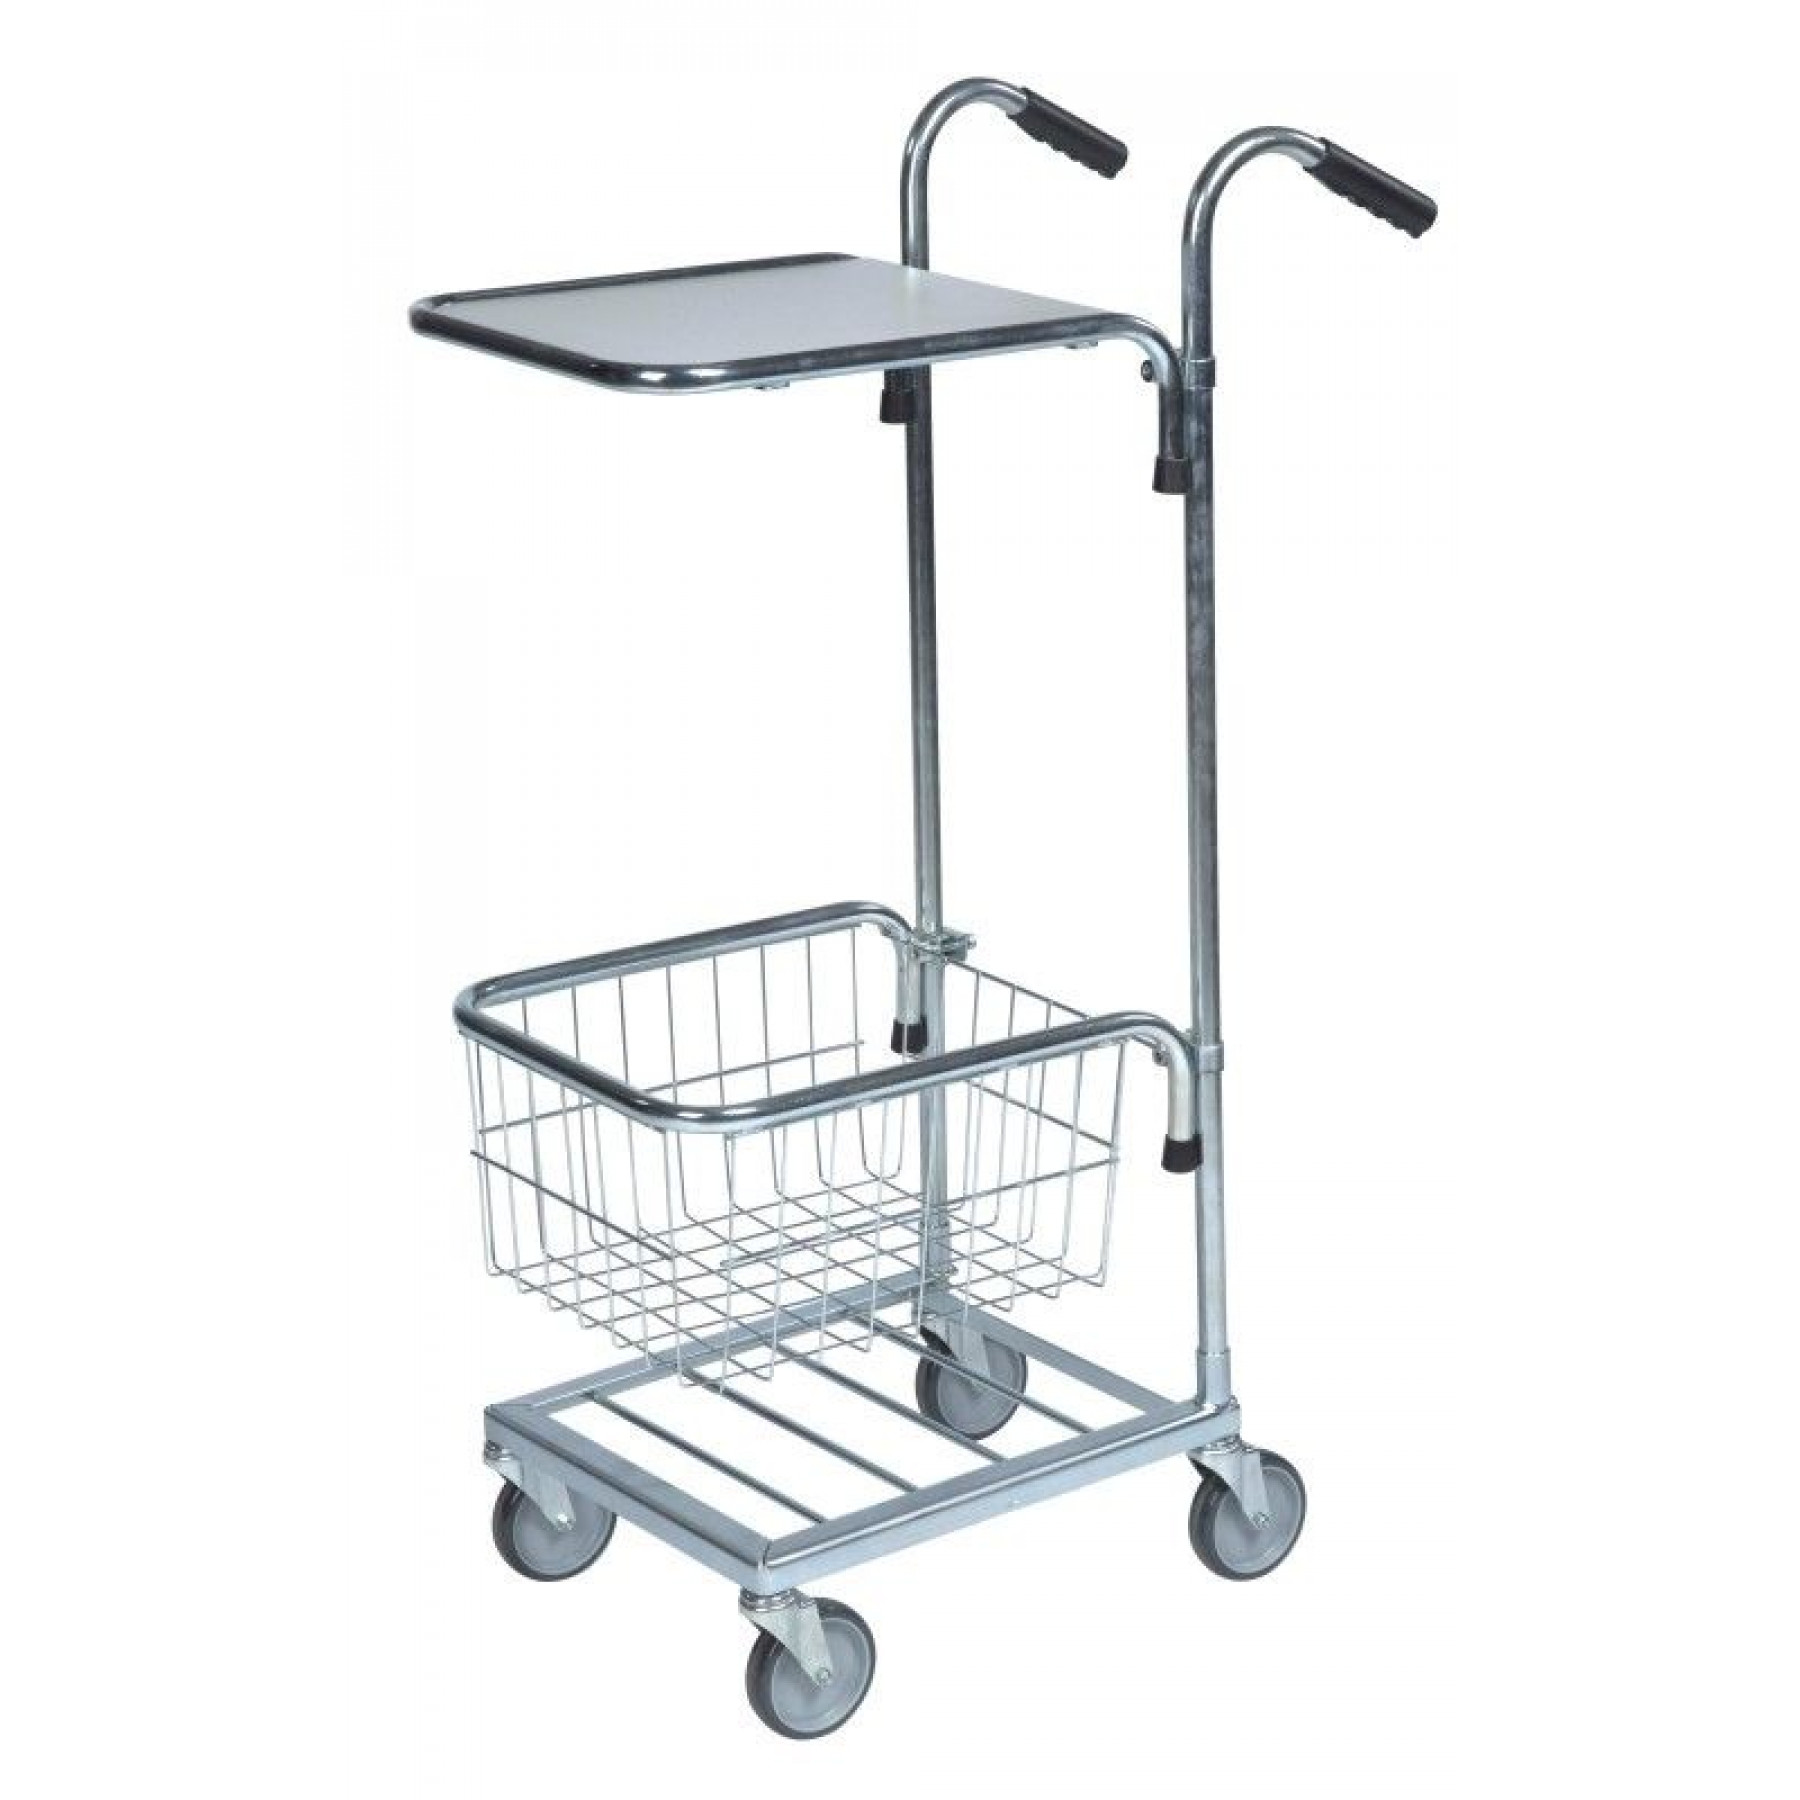 Mini trolley met 1 legbord en 1 draadmand, KM 153-HT